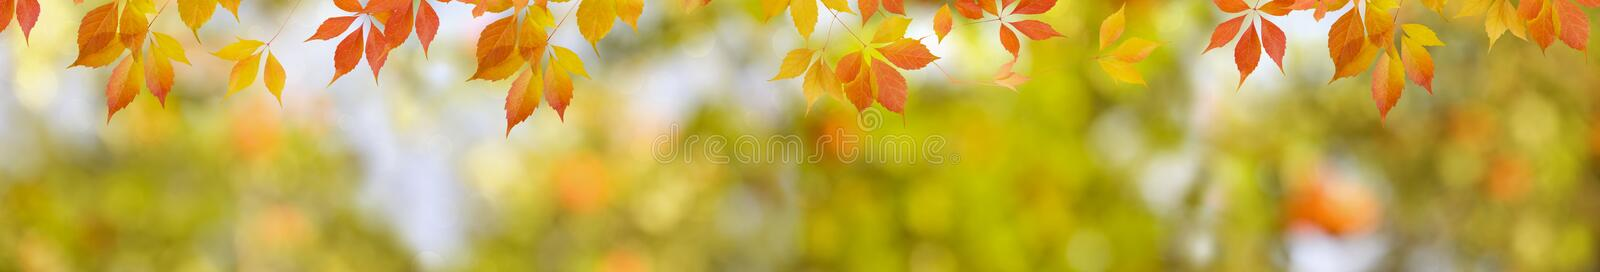 Autumn nature background with red leaves and blurred backdrop. Wide panorama format for banner or border stock image